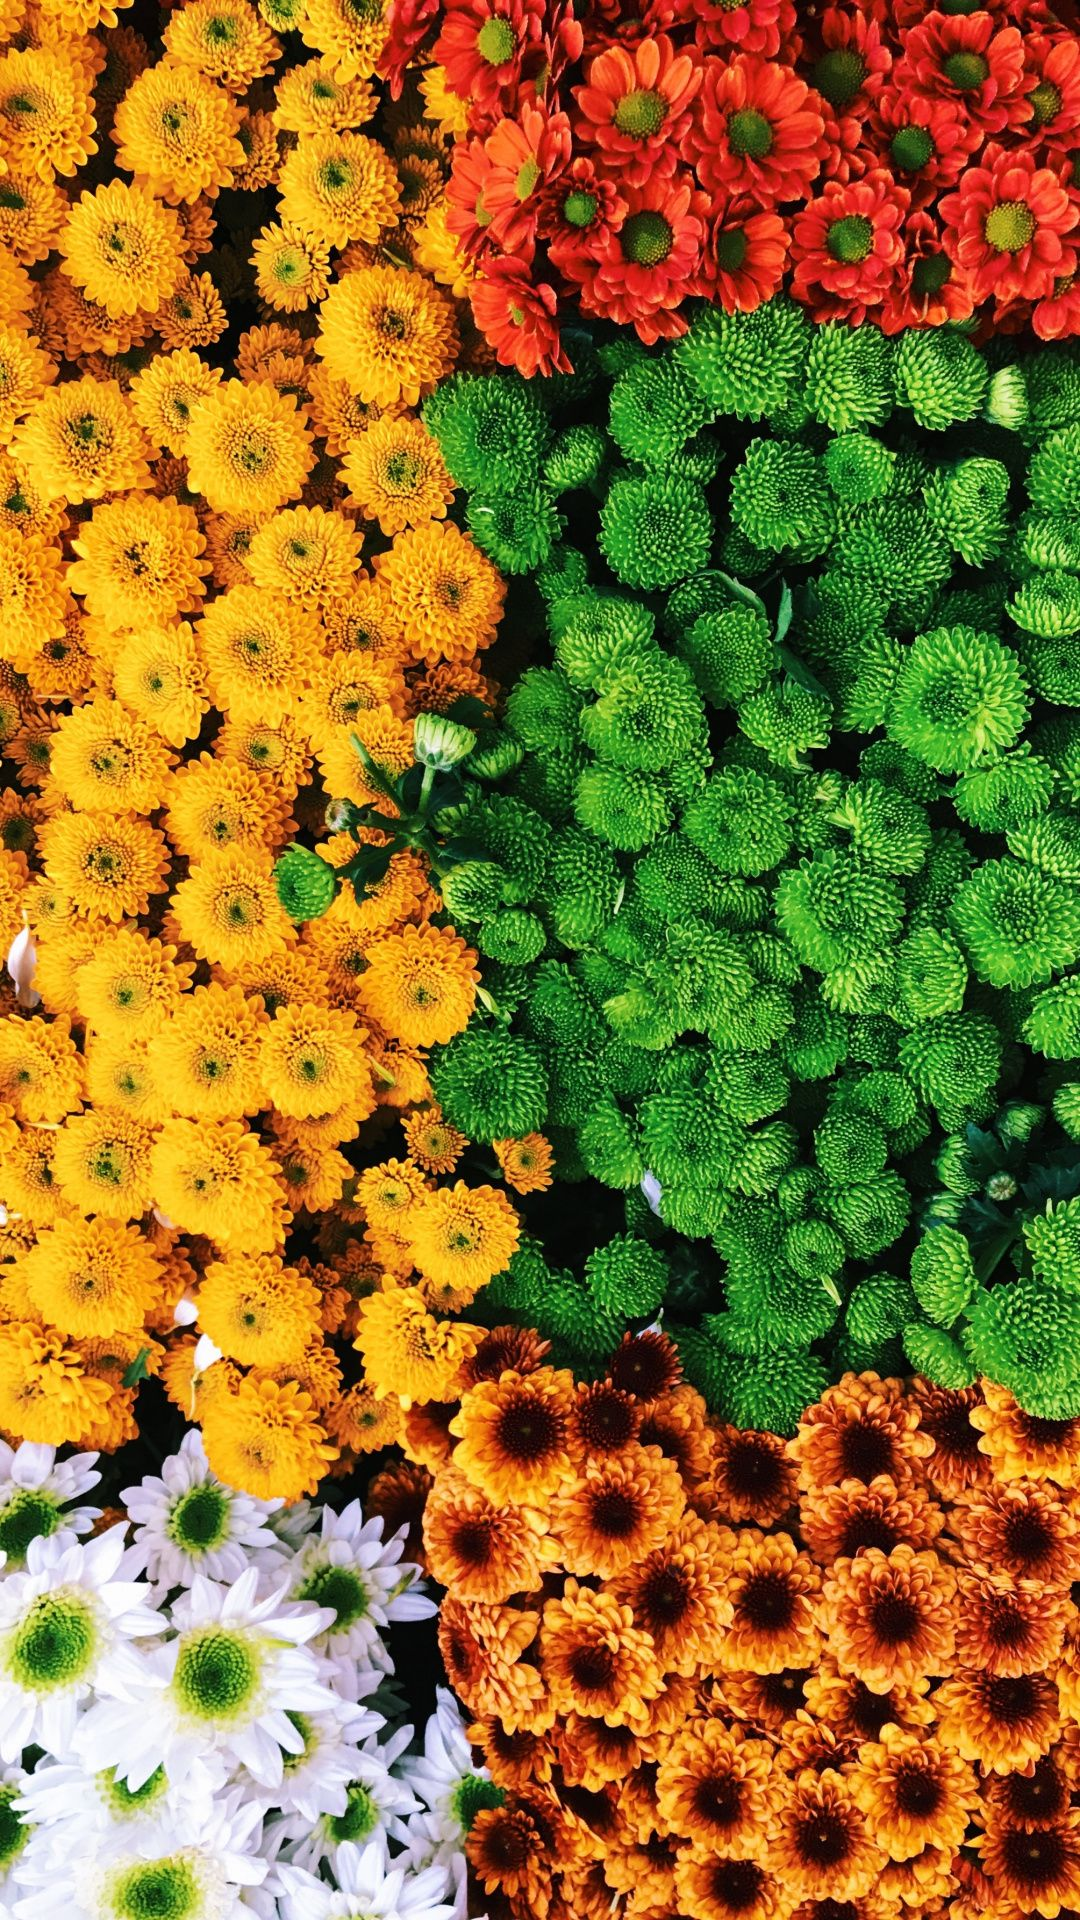 Wallpapers yellow, annual plant, plant, tansy, groundcover